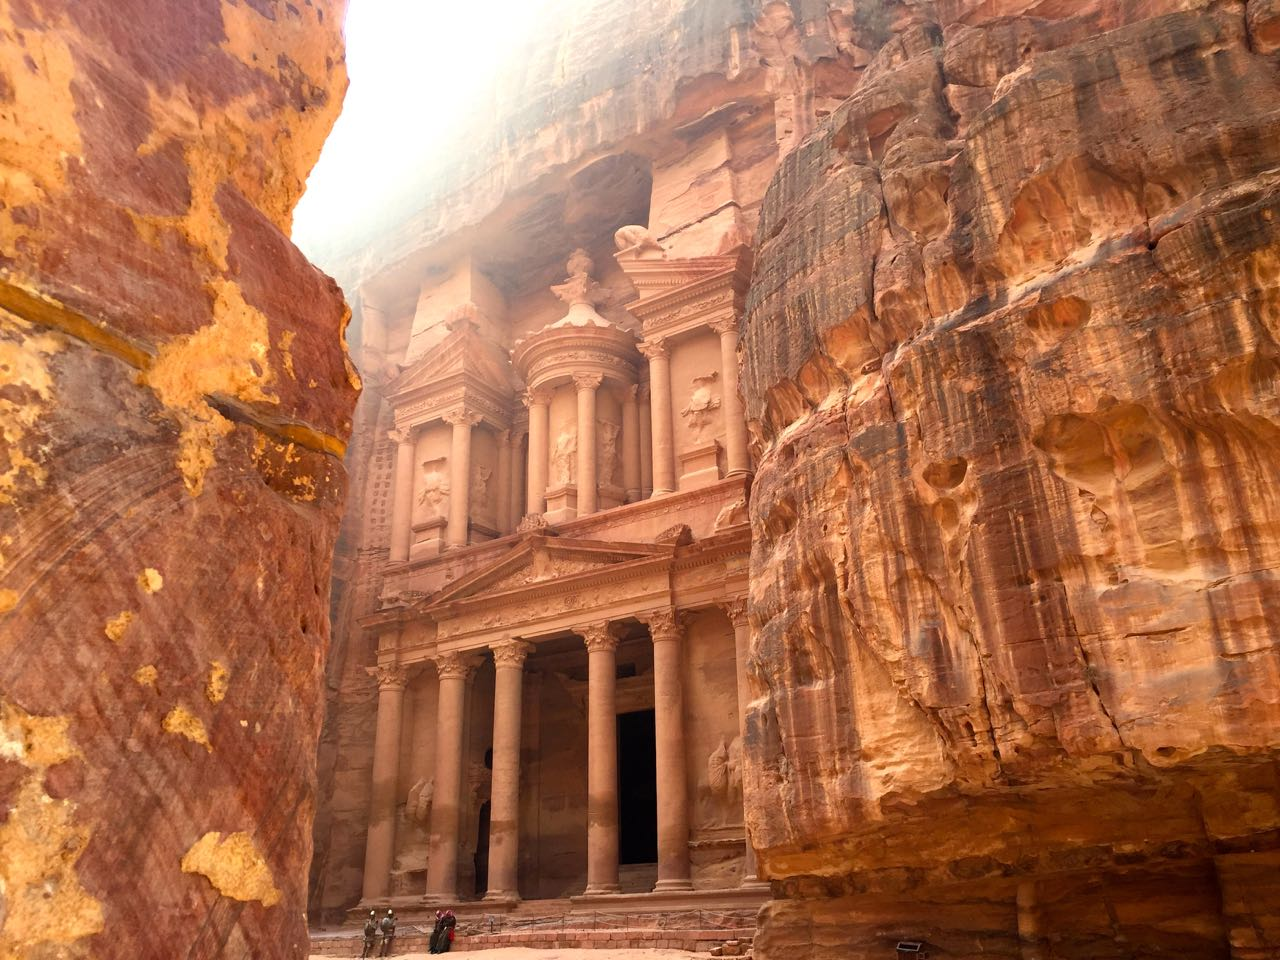 Jordan – a Haven in the Middle East